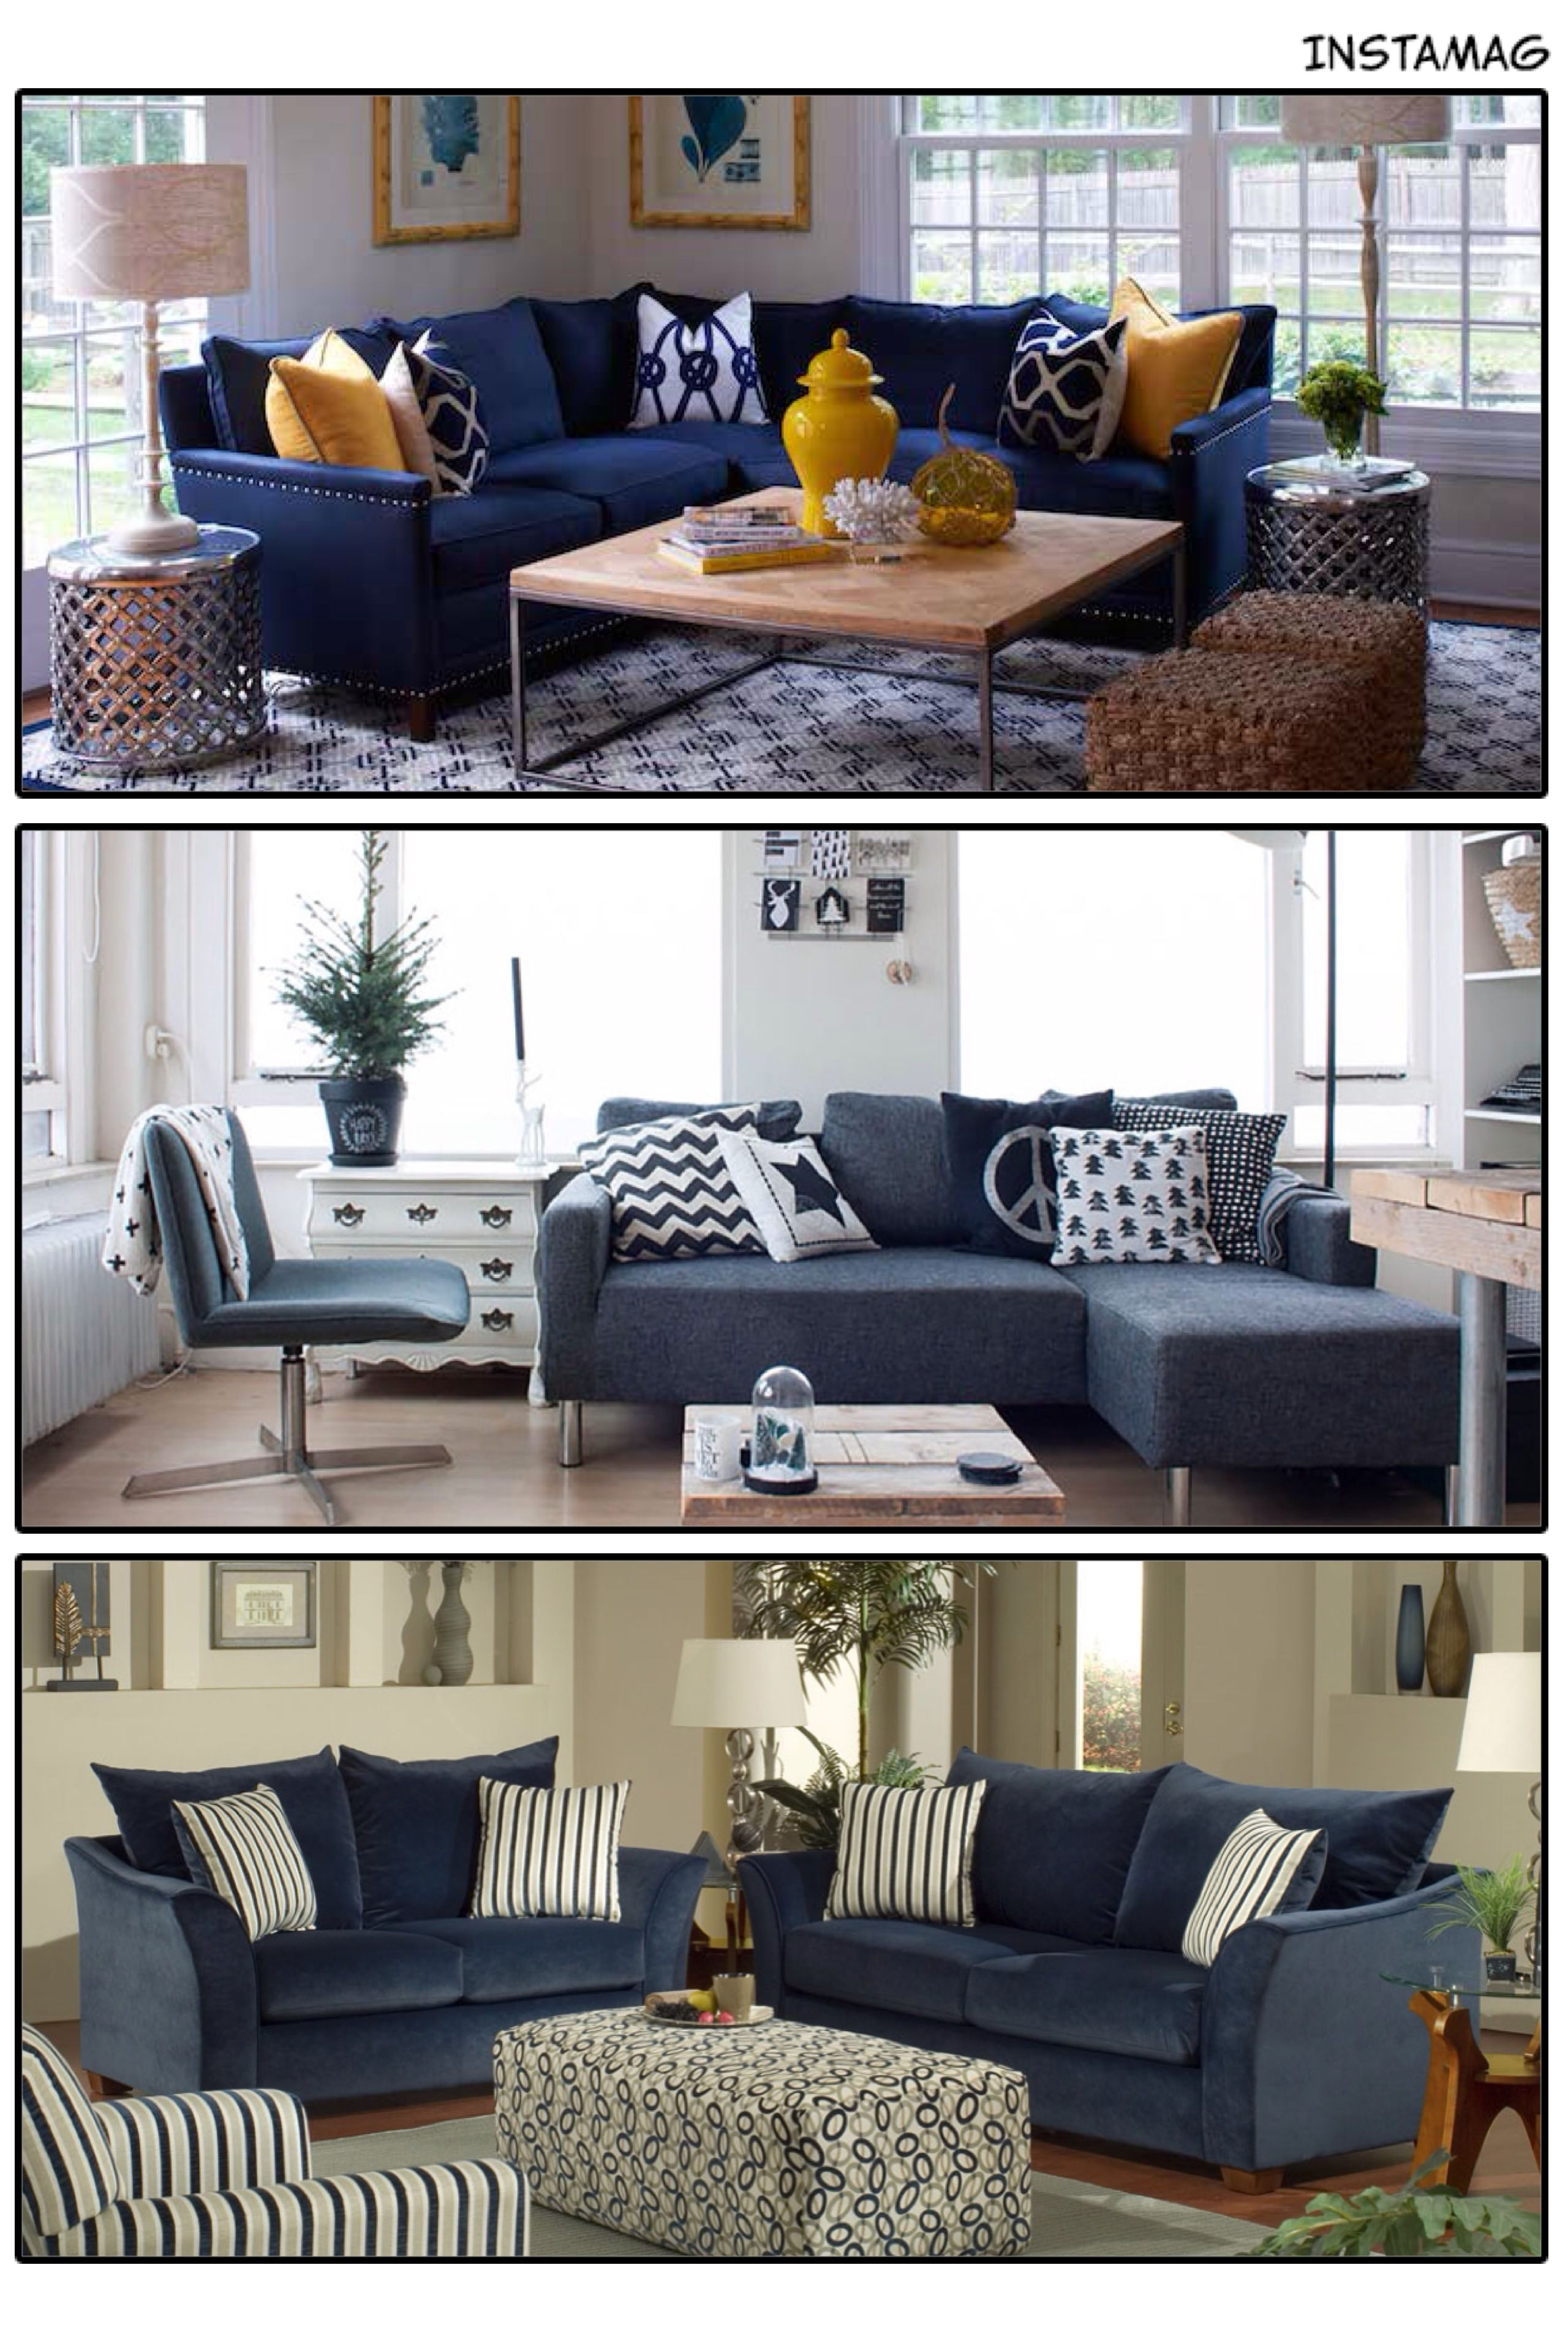 Transitional Living Room With Coastal Vibe And Blue: Featuring Blue Upholstery And Sleek Mid-century Design